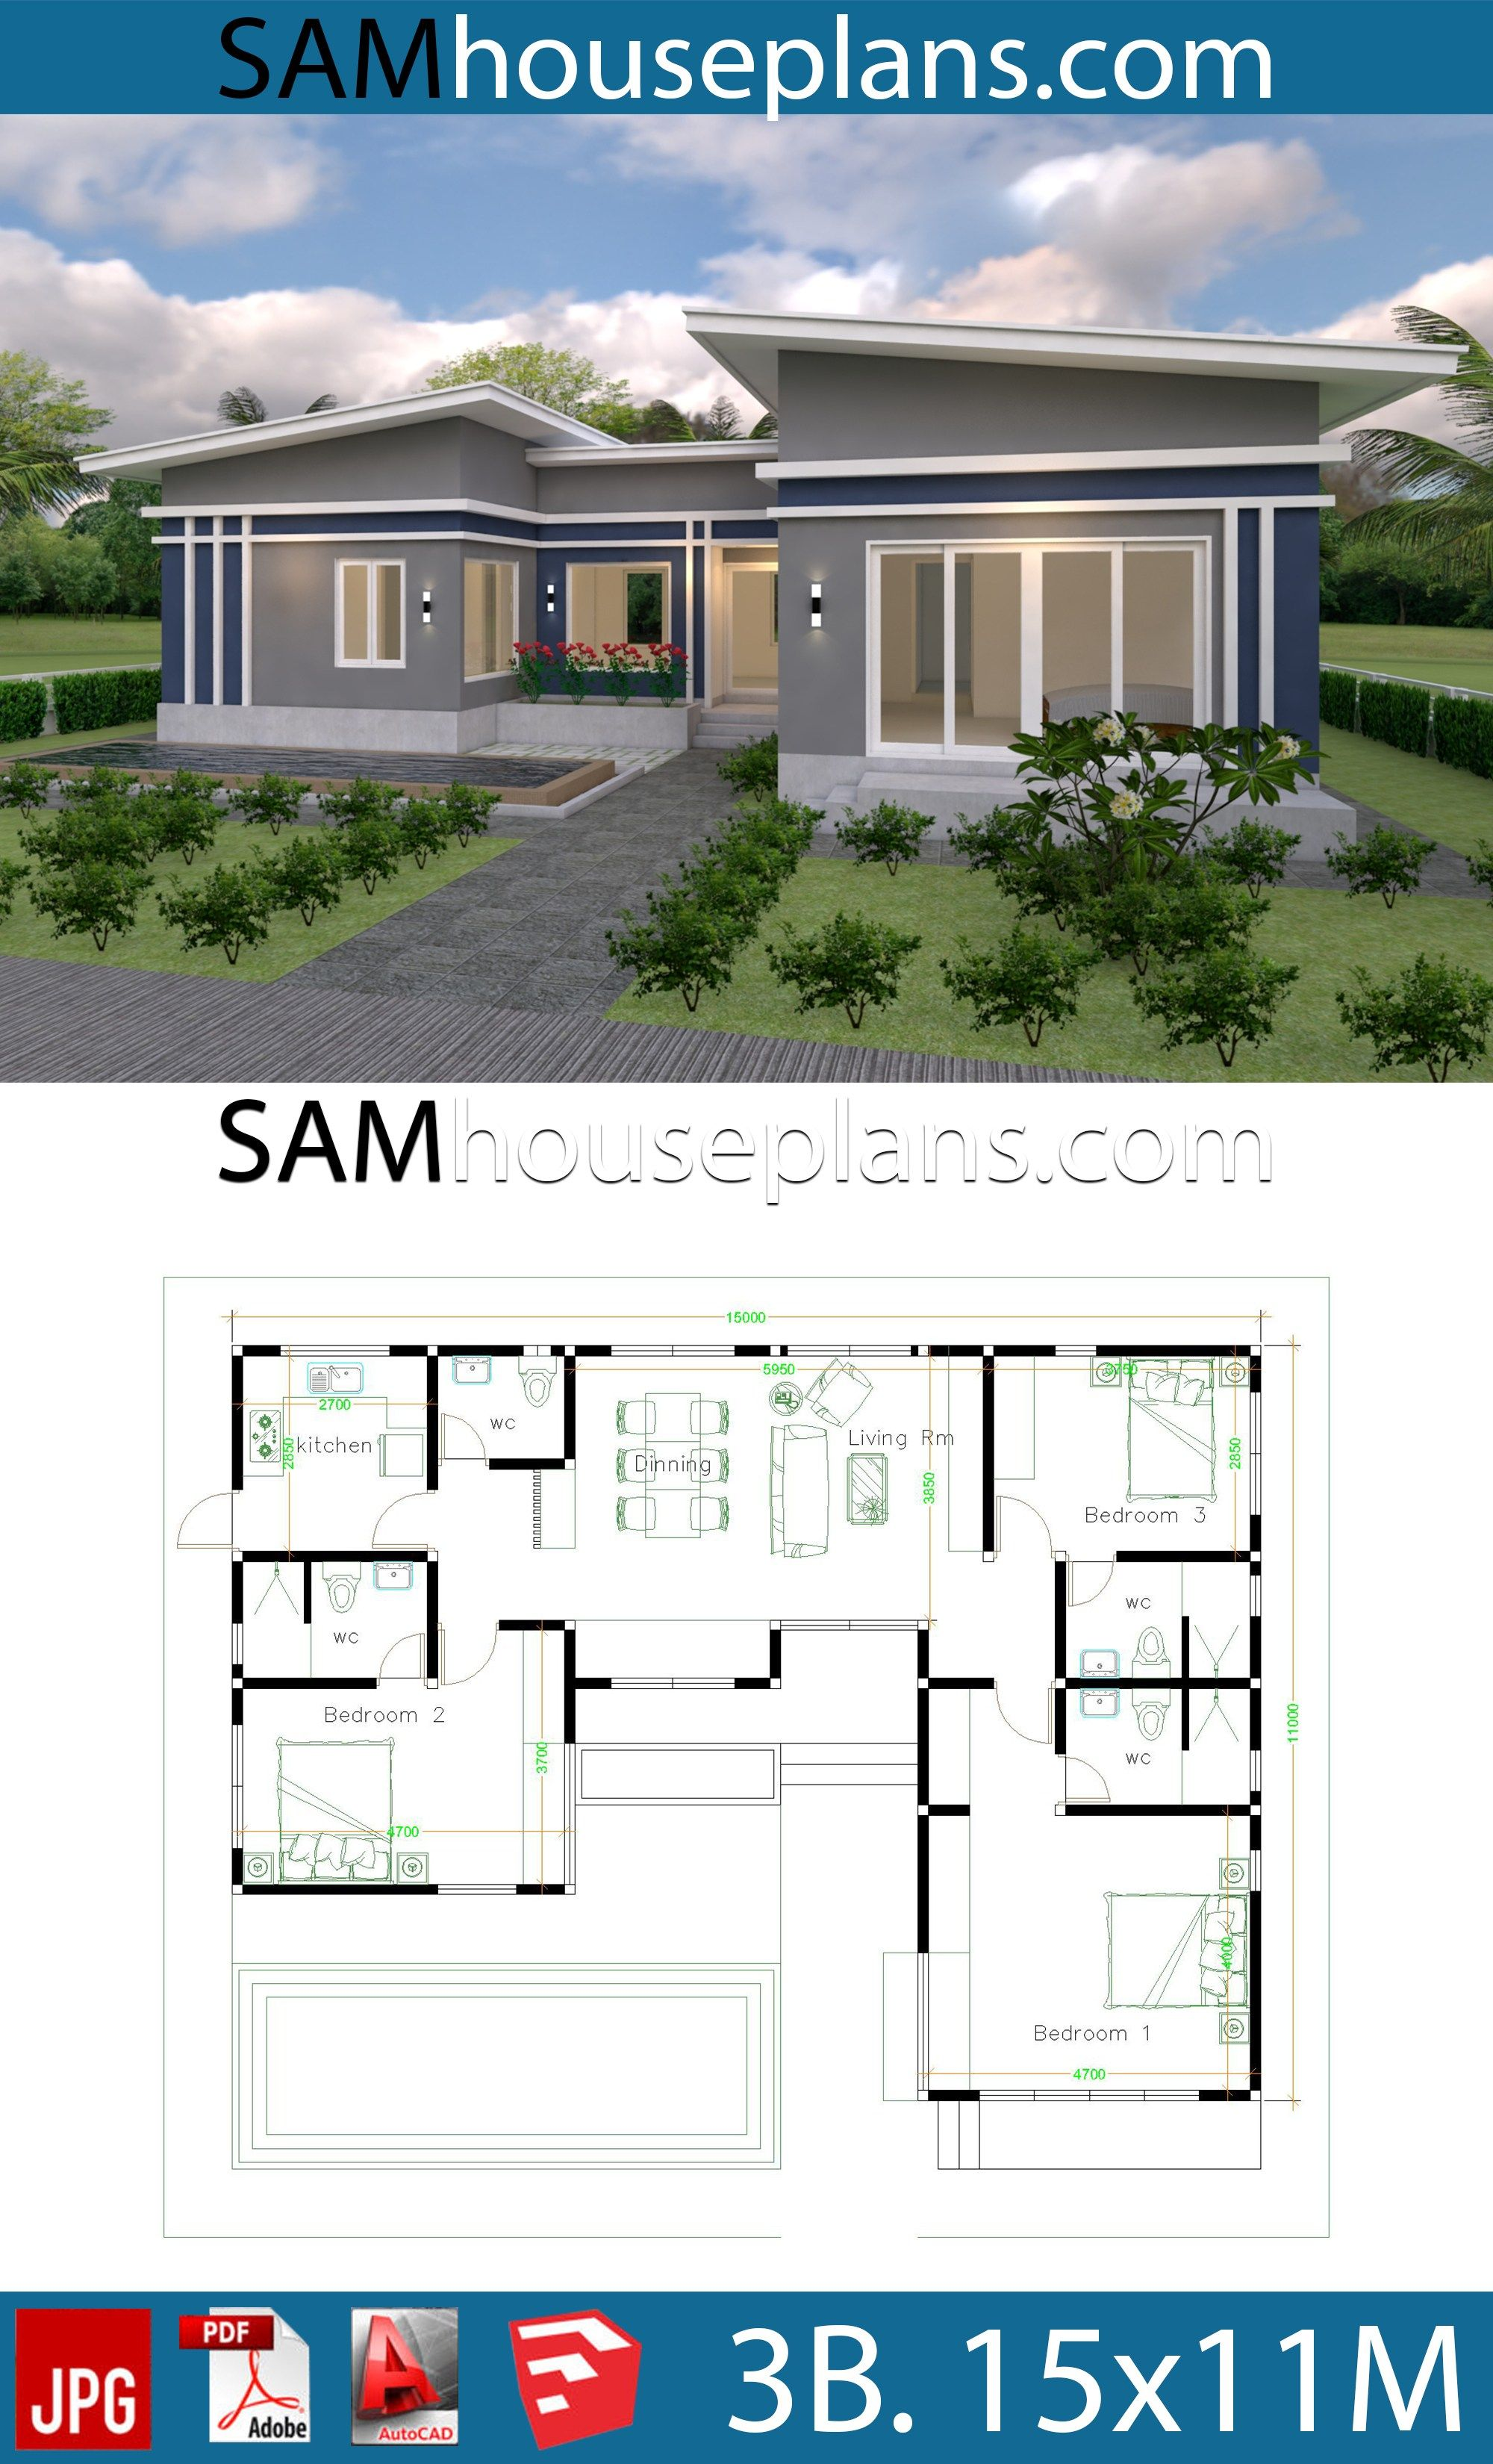 House Plans Idea 17x13 With 3 Bedrooms Slope Roof Sam House Plans In 2020 House Plans Mansion Small House Design Plans House Layout Plans